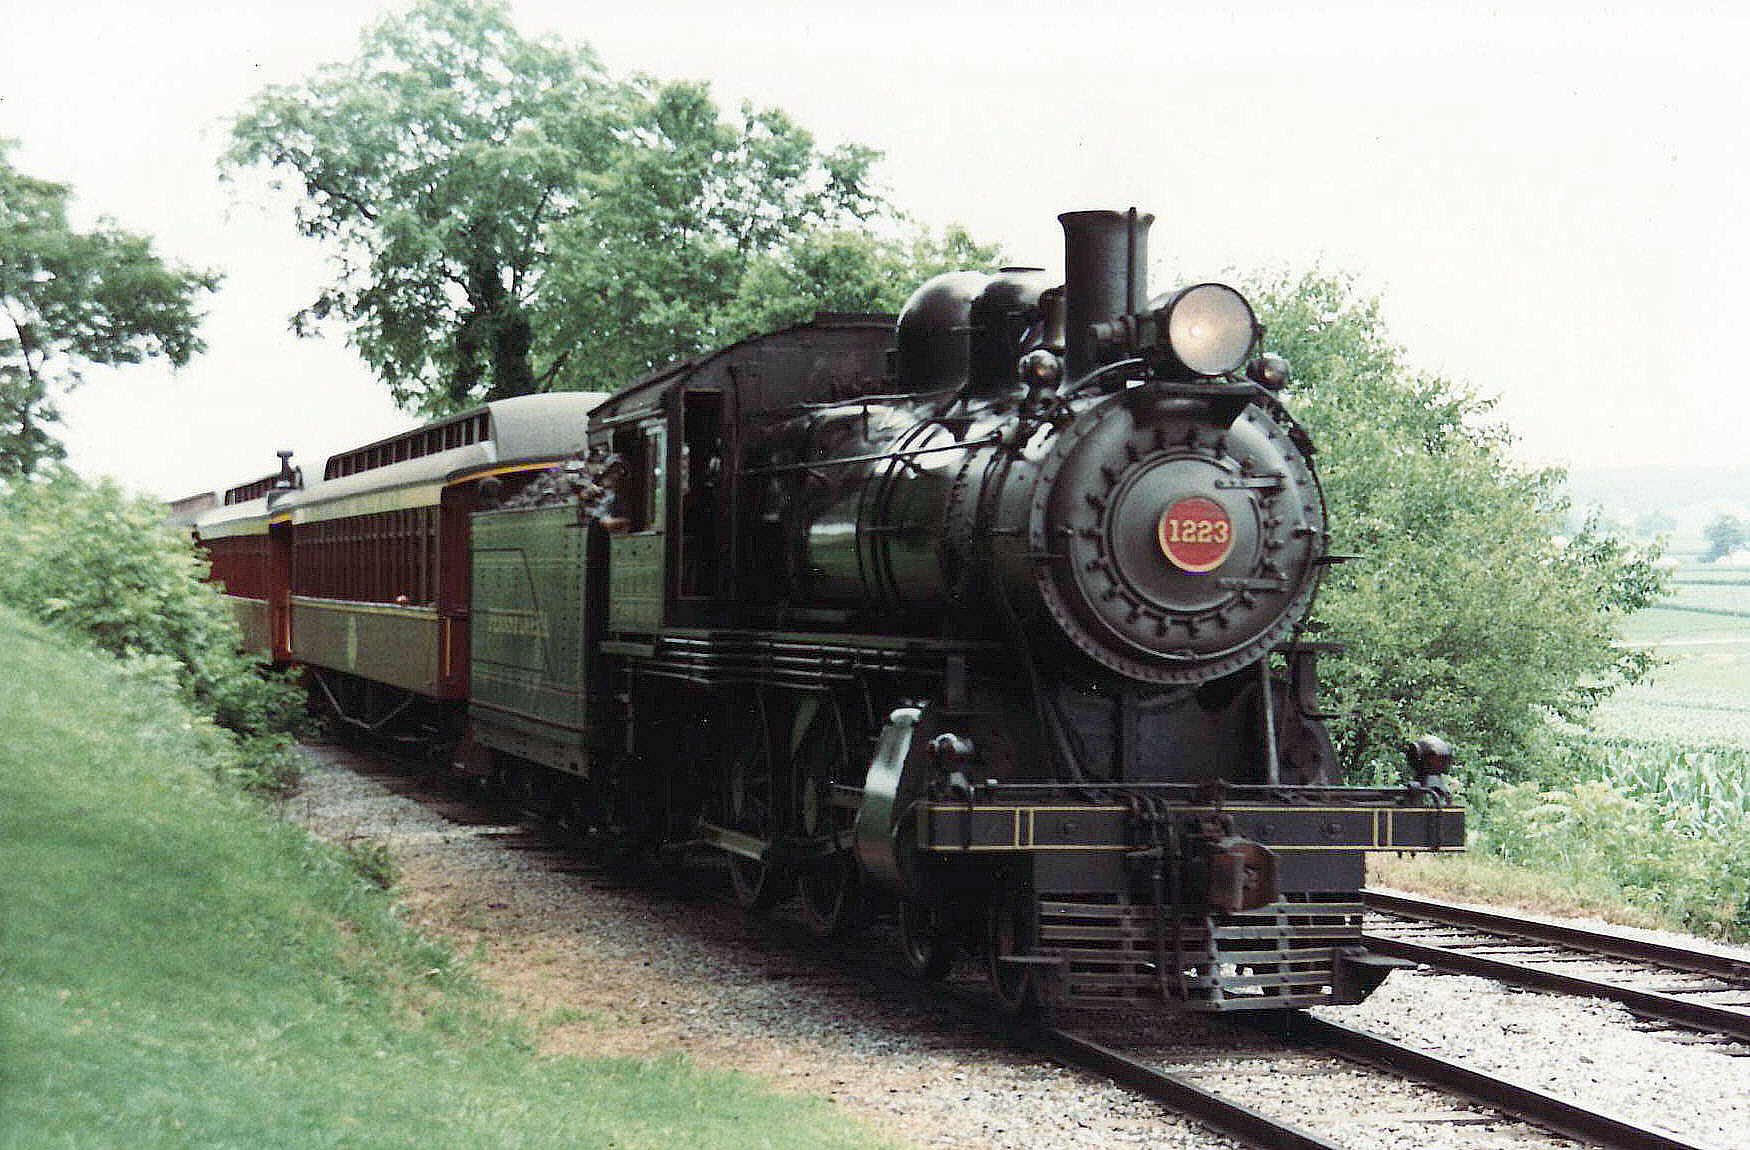 Pennsylvania Railroad D16 James G. Howes [Attribution], from Wikimedia Commons